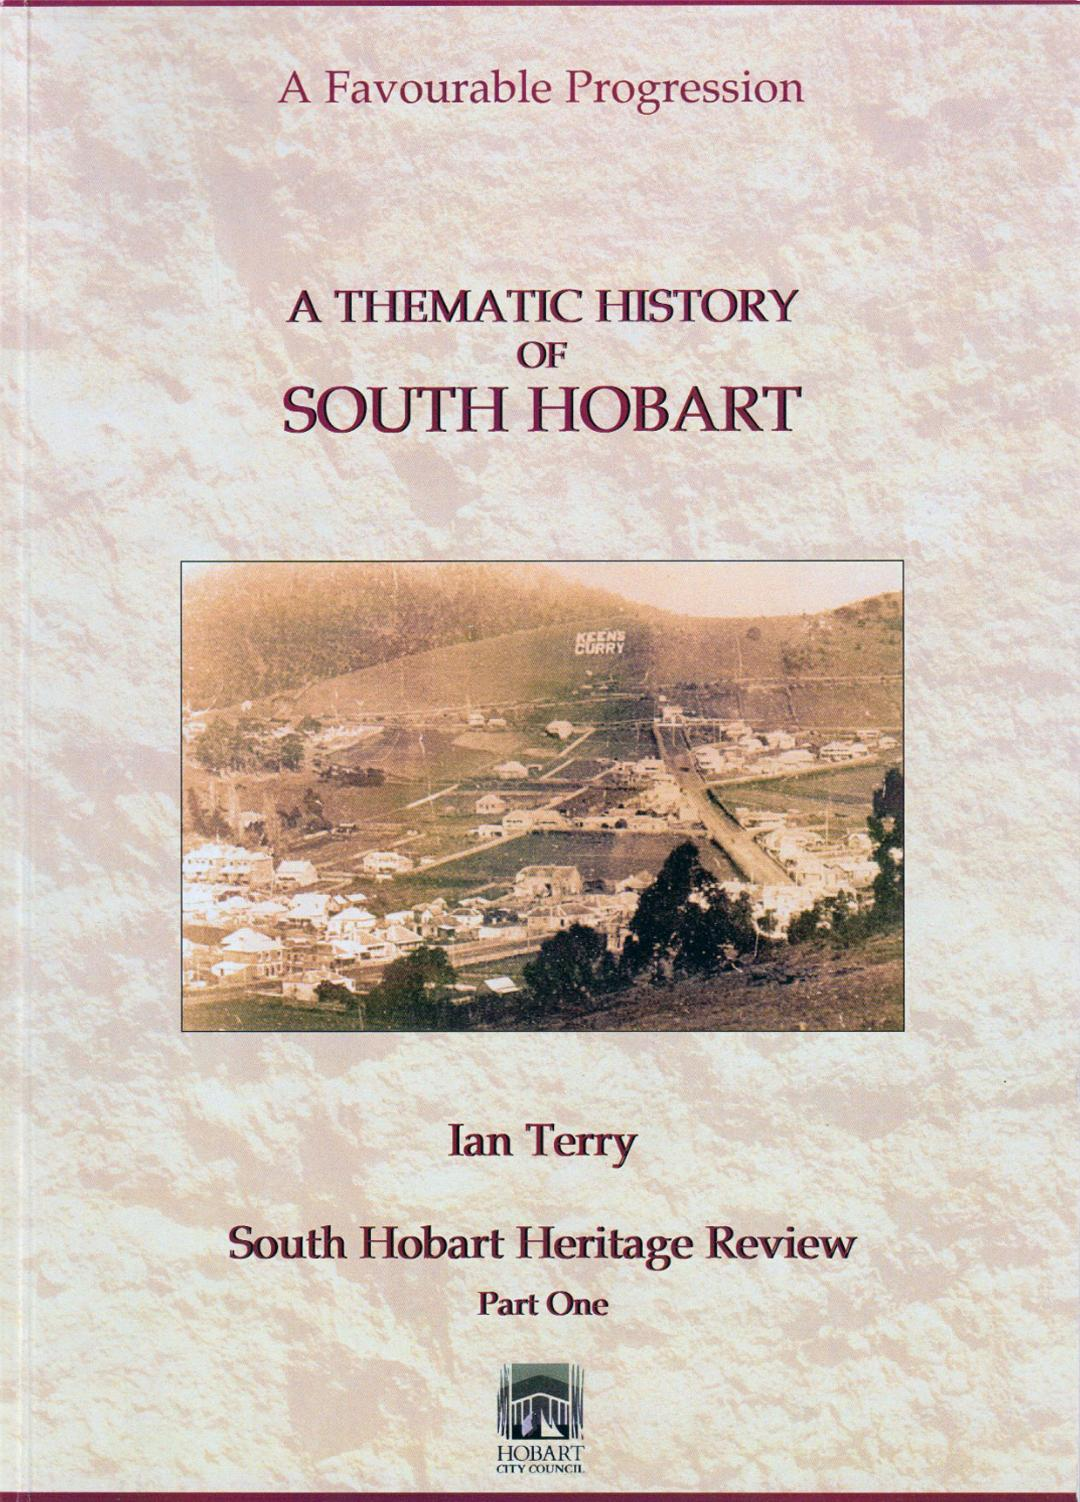 A Thematic History of South Hobart - A Favourable Progression